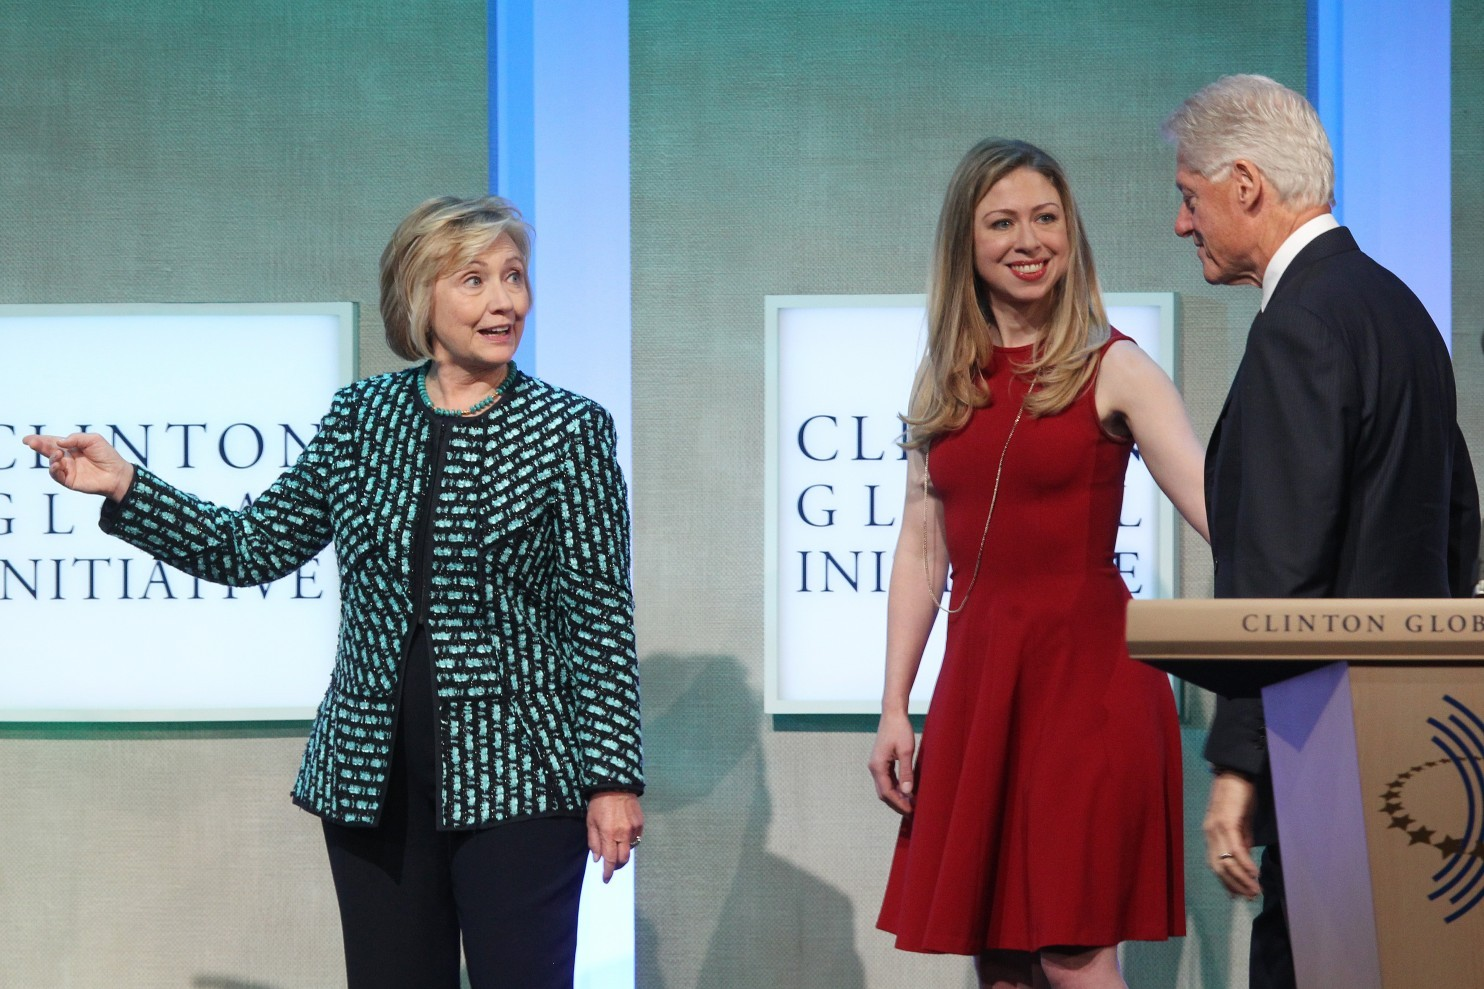 Hillary, Chelsea and Bill Clinton attend the Clinton Global Initiative in New York in September 2013. (AFP/AFP/Getty Images)